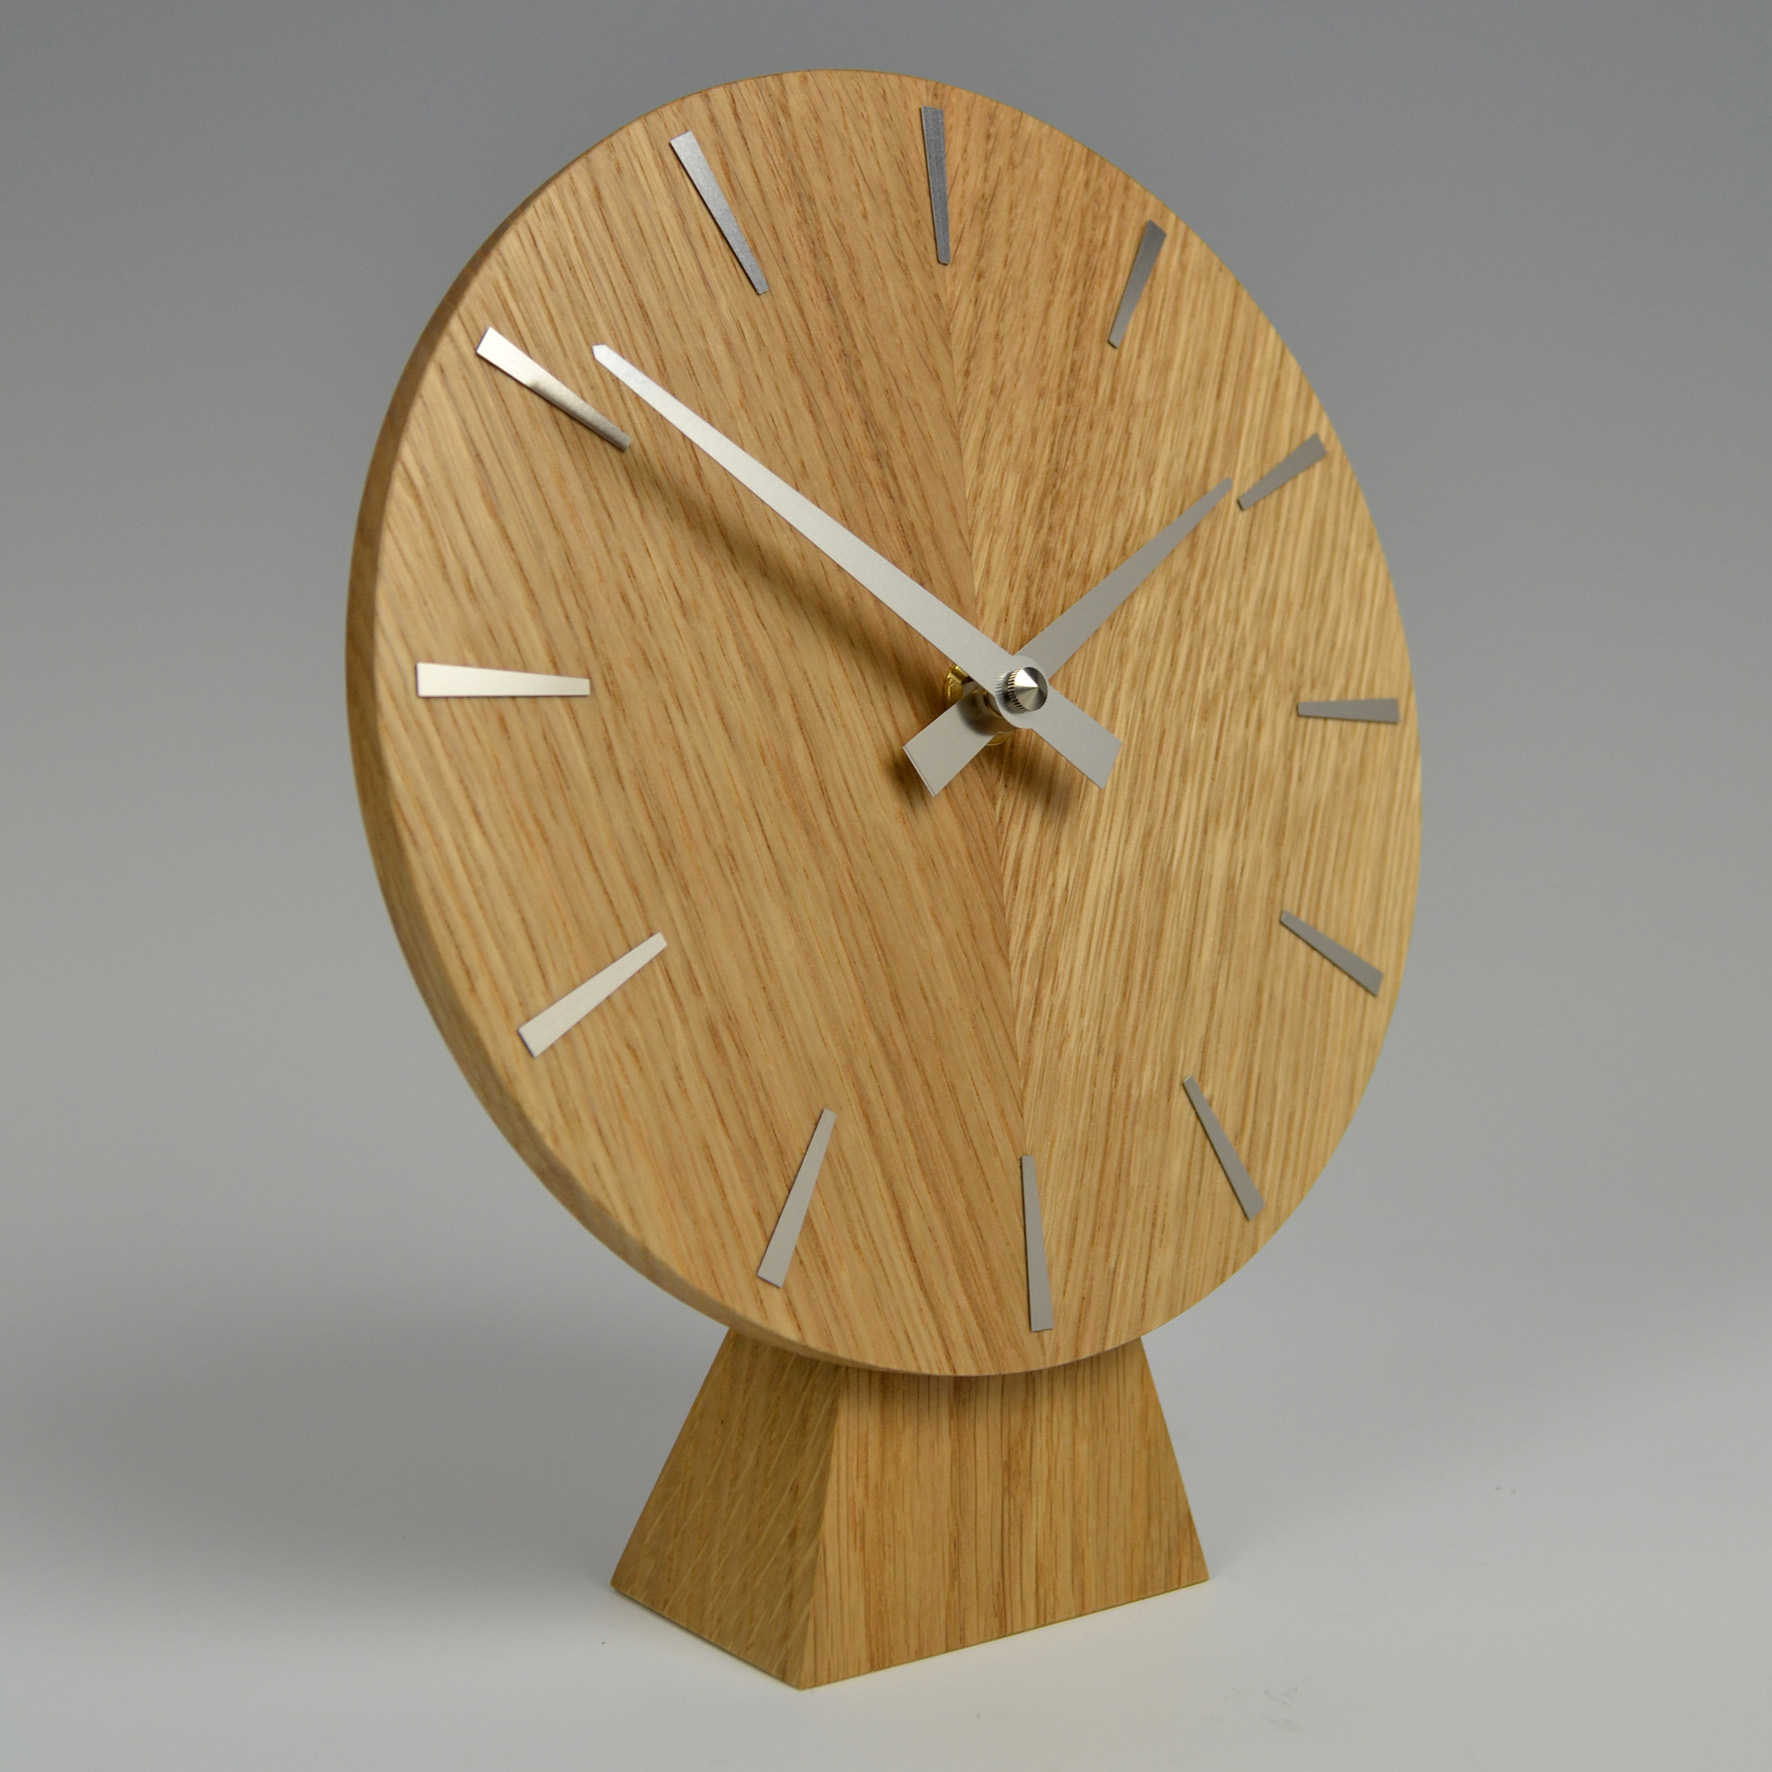 Handmade Oak mantel clock